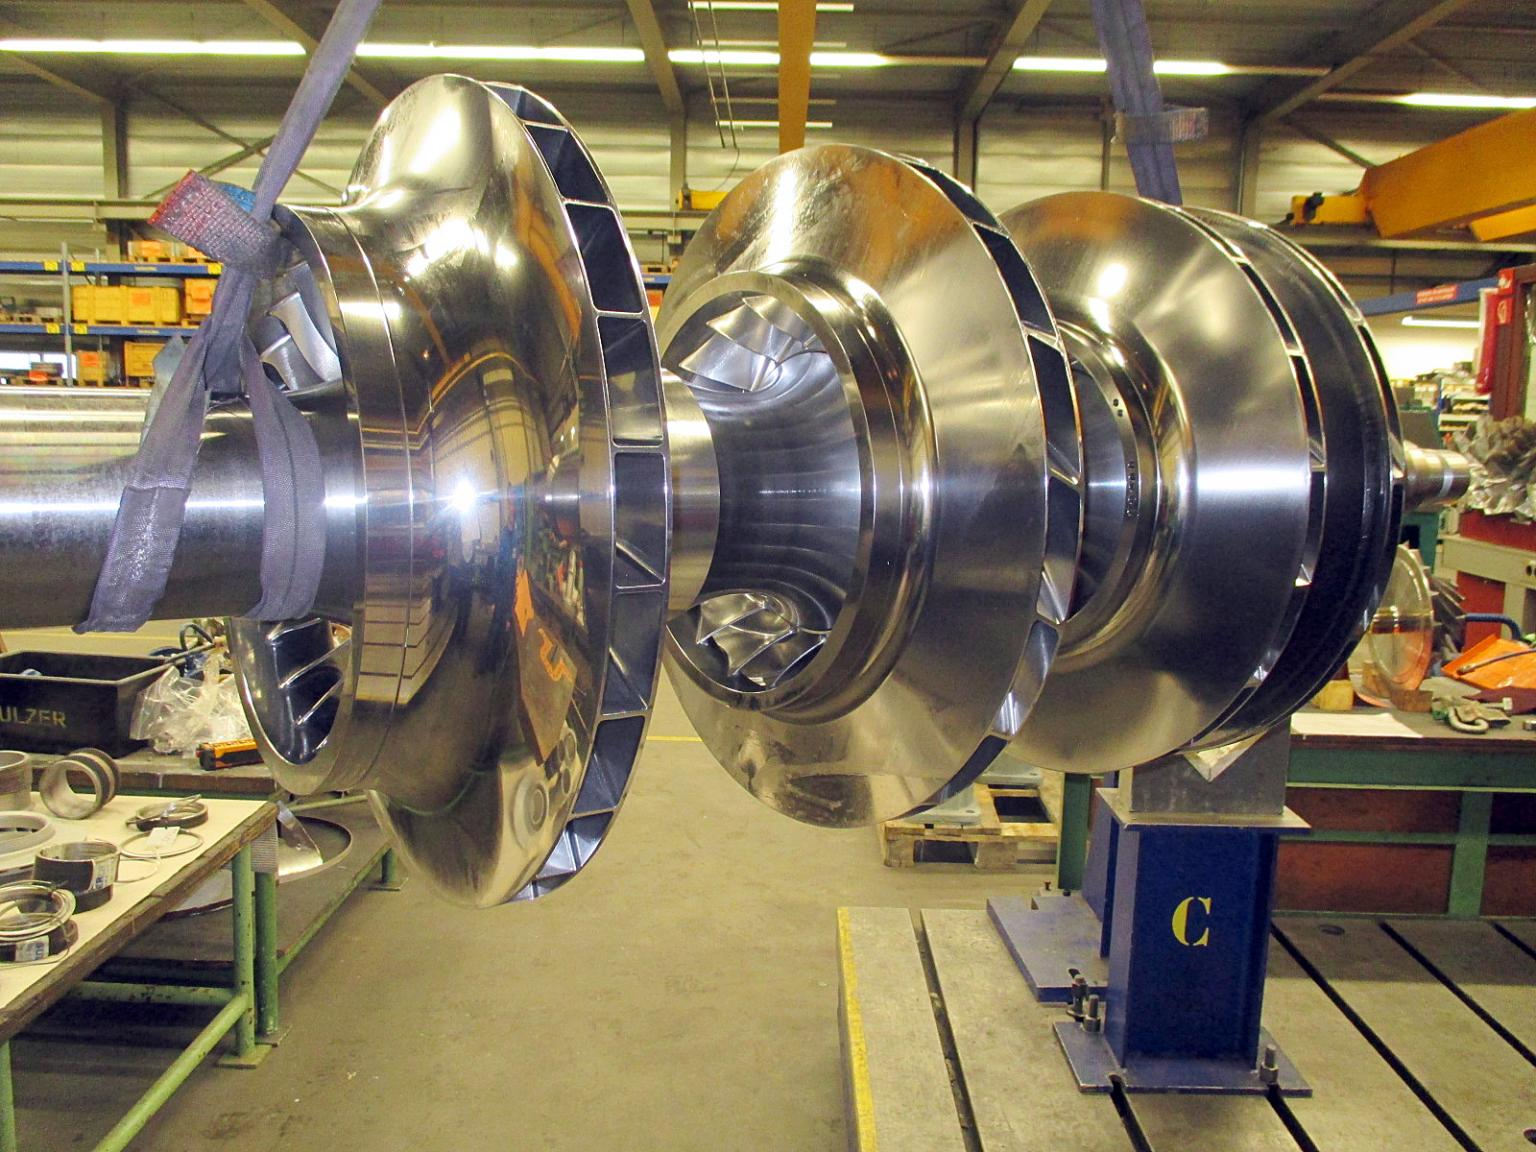 Each impeller was spin tested before being mounted onto the new rotor shaft to ensure the integrity of the impeller construction when operating under load